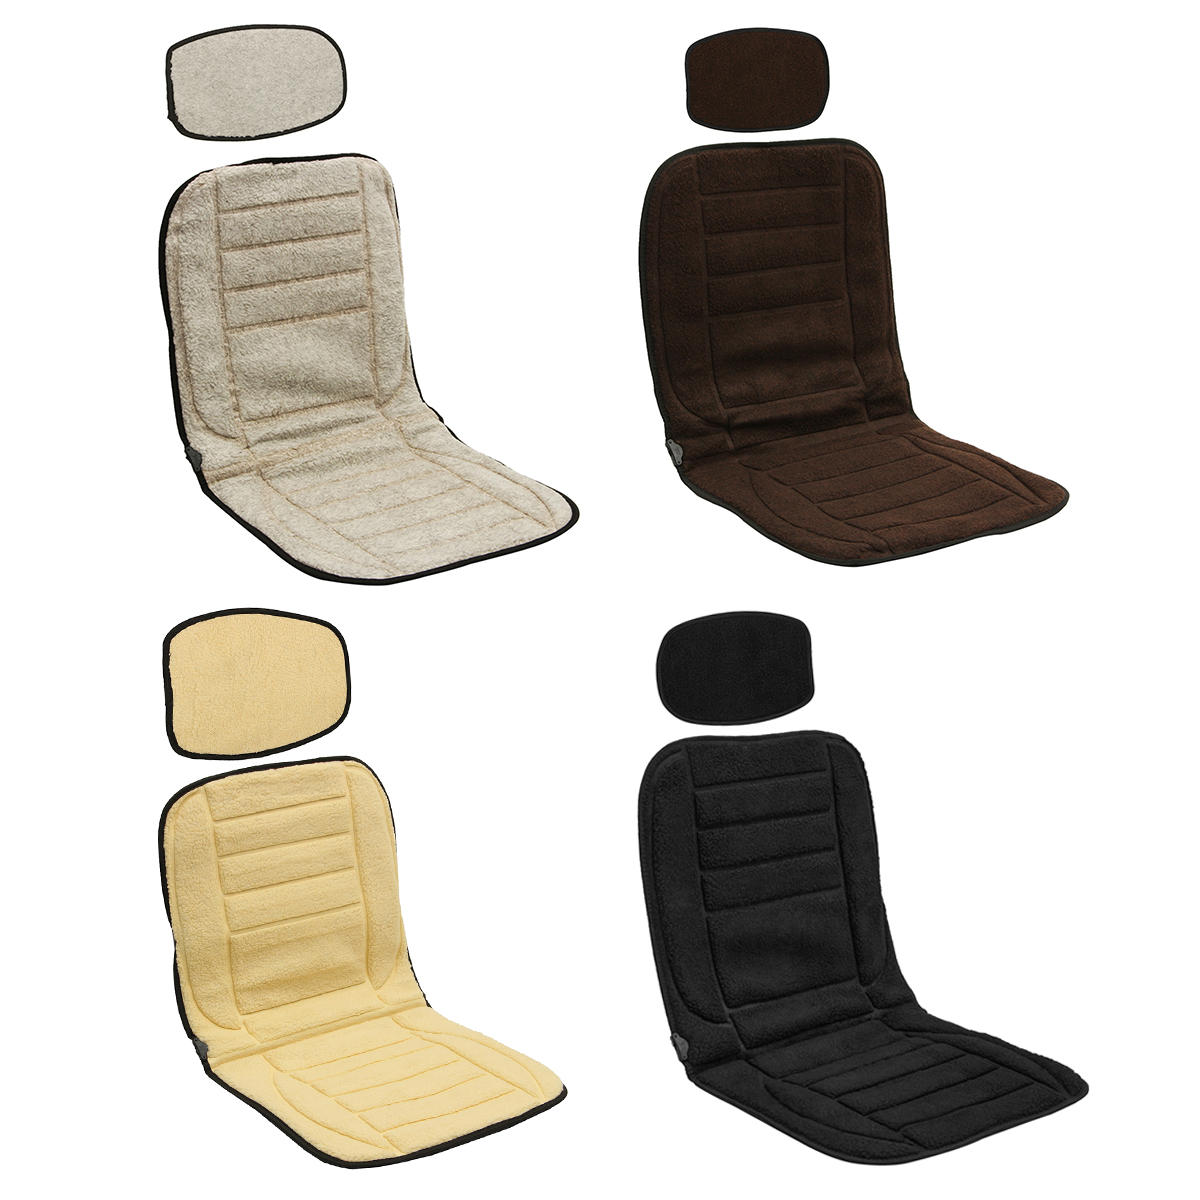 12V Plush Car Heating Pads from Banggood